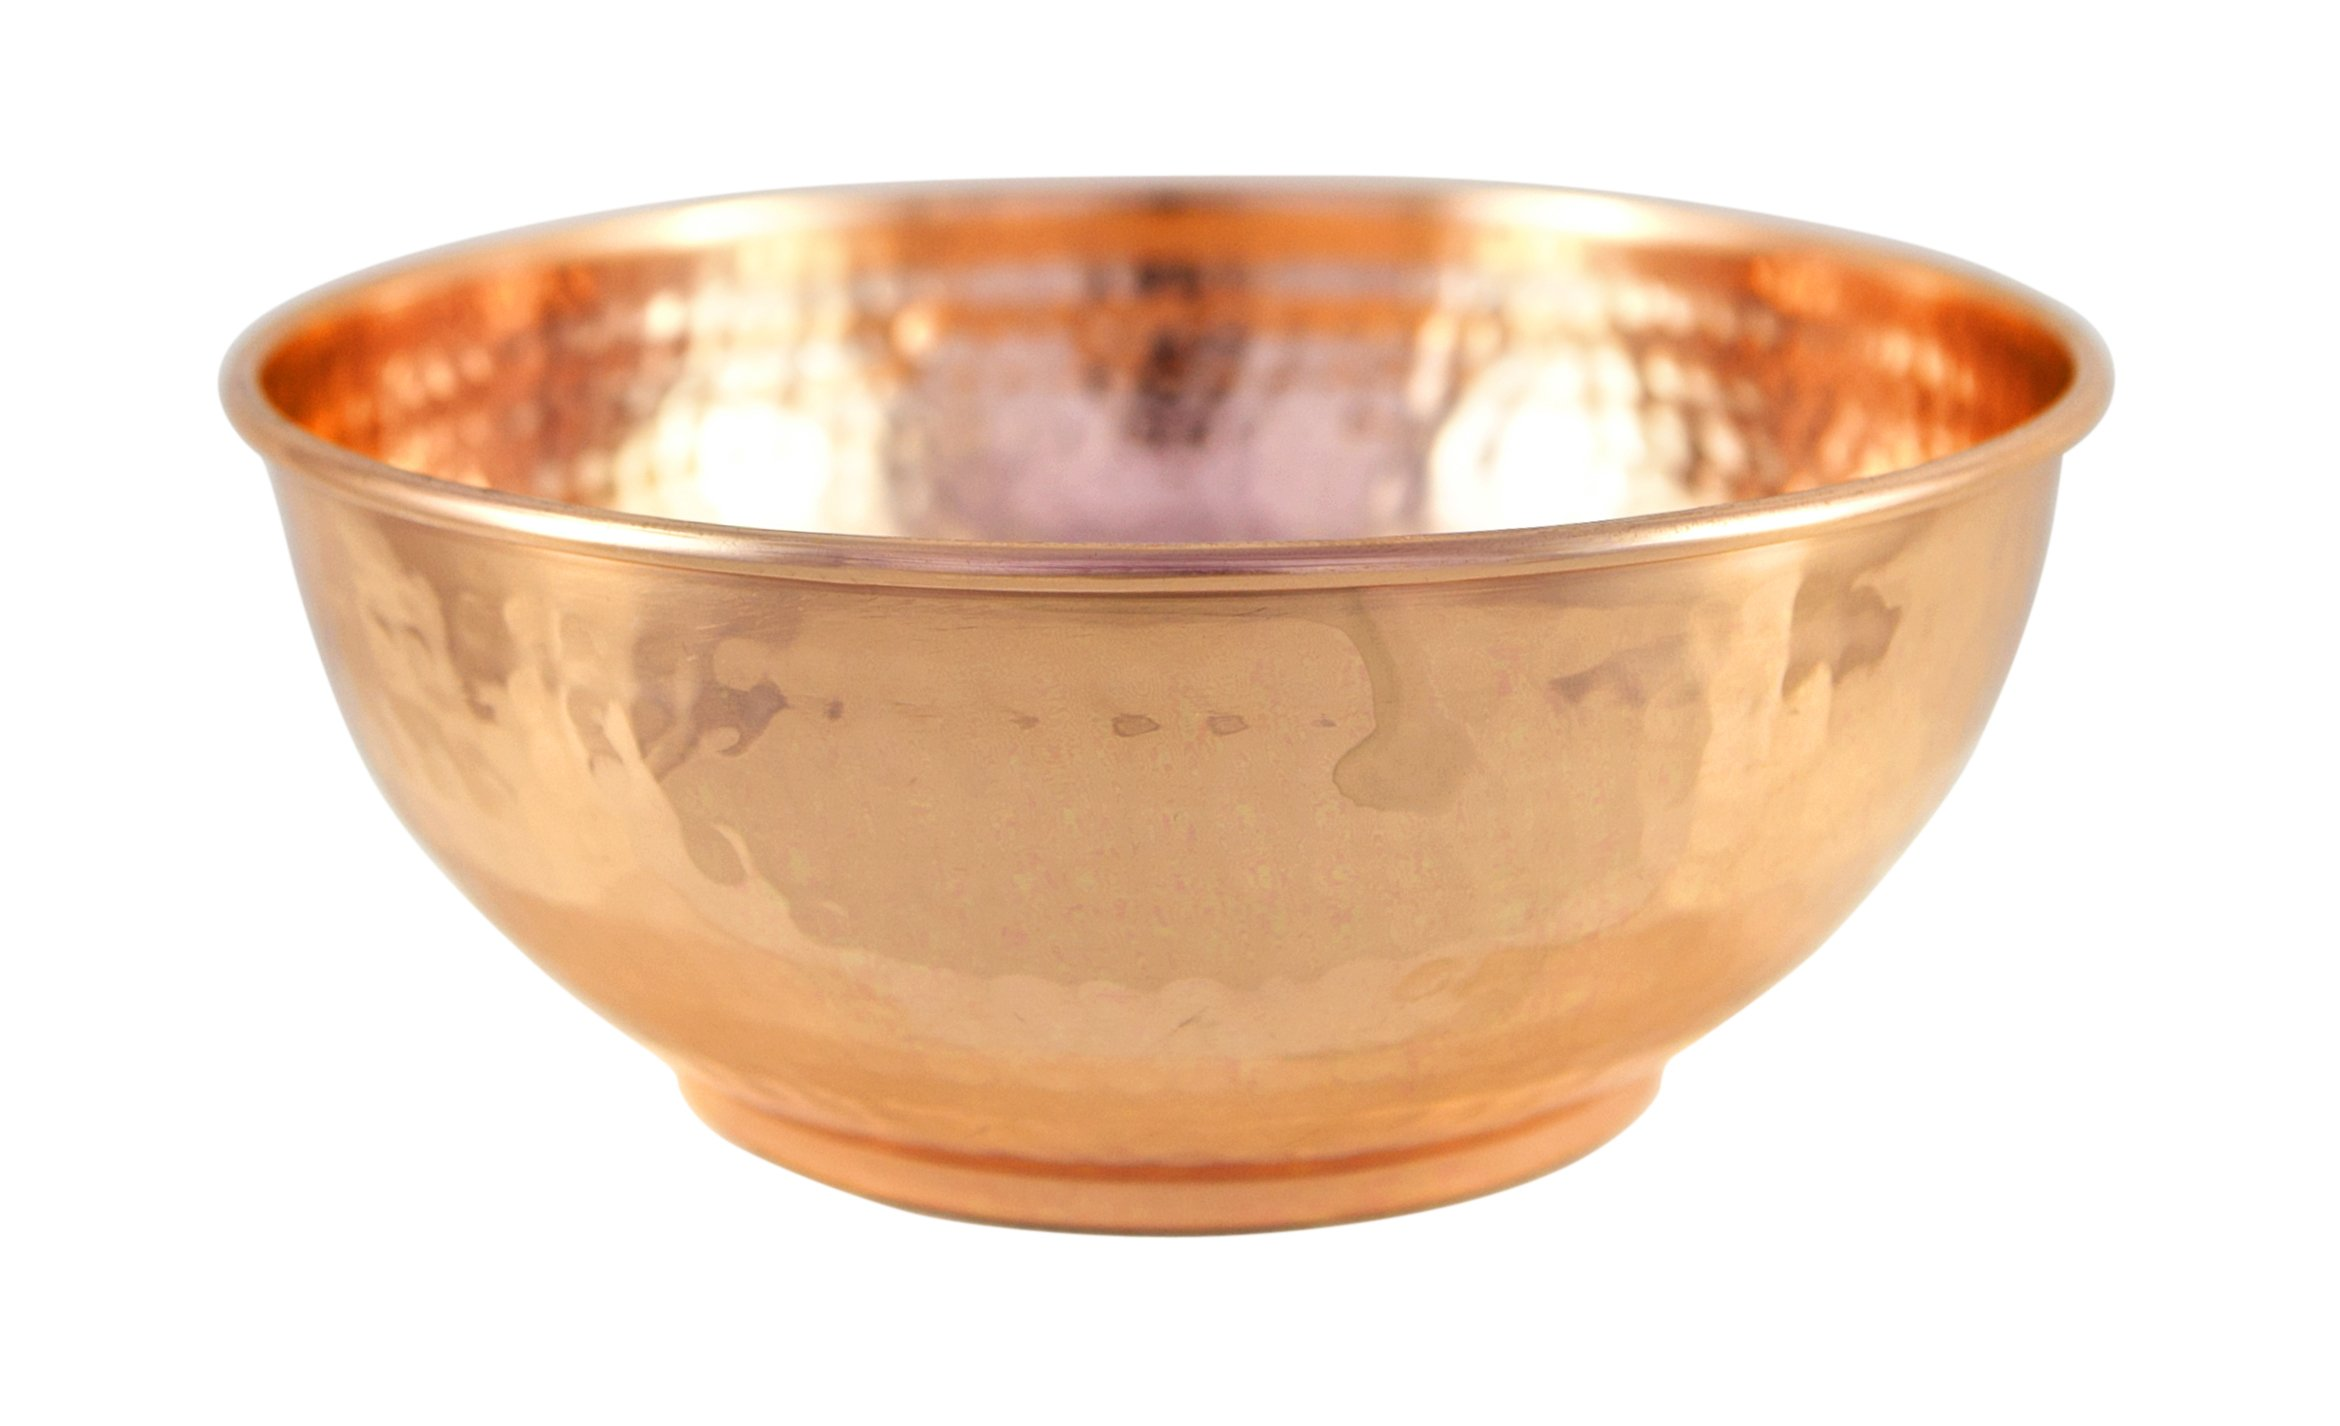 Copper Hammered Mixing Bowl, 100% Pure Heavy Gauge - Multipurpose Use of Antique Copper Serving Bowl For Candy, Salad, Egg Beating - Decorative Copper Bowl For Your Kitchen - 7.5'' Size By Alchemade by Alchemade